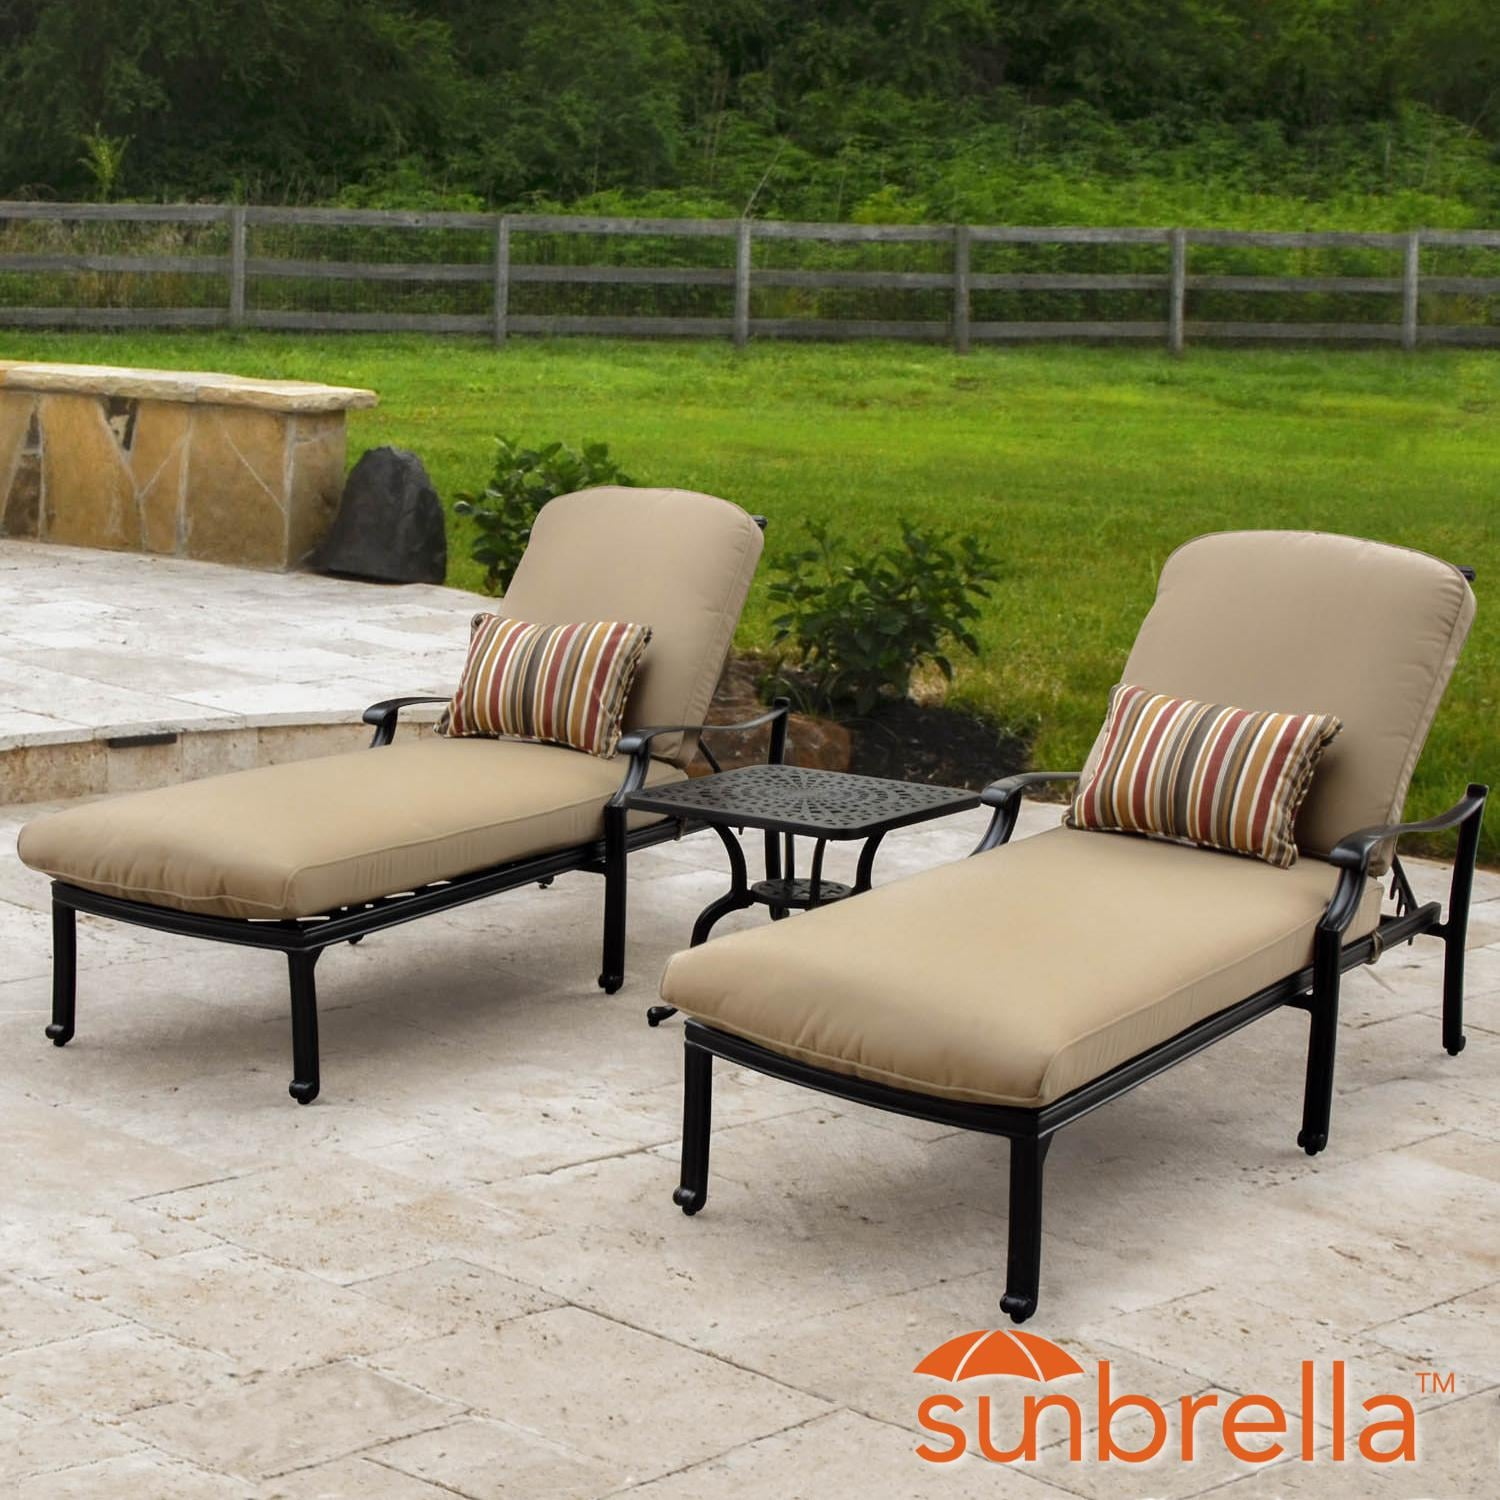 Bocage 3 Piece Cast Aluminum Patio Chaise Lounge Set W/ Sunbrella Heather  Beige Cushions By Lakeview Outdoor Designs